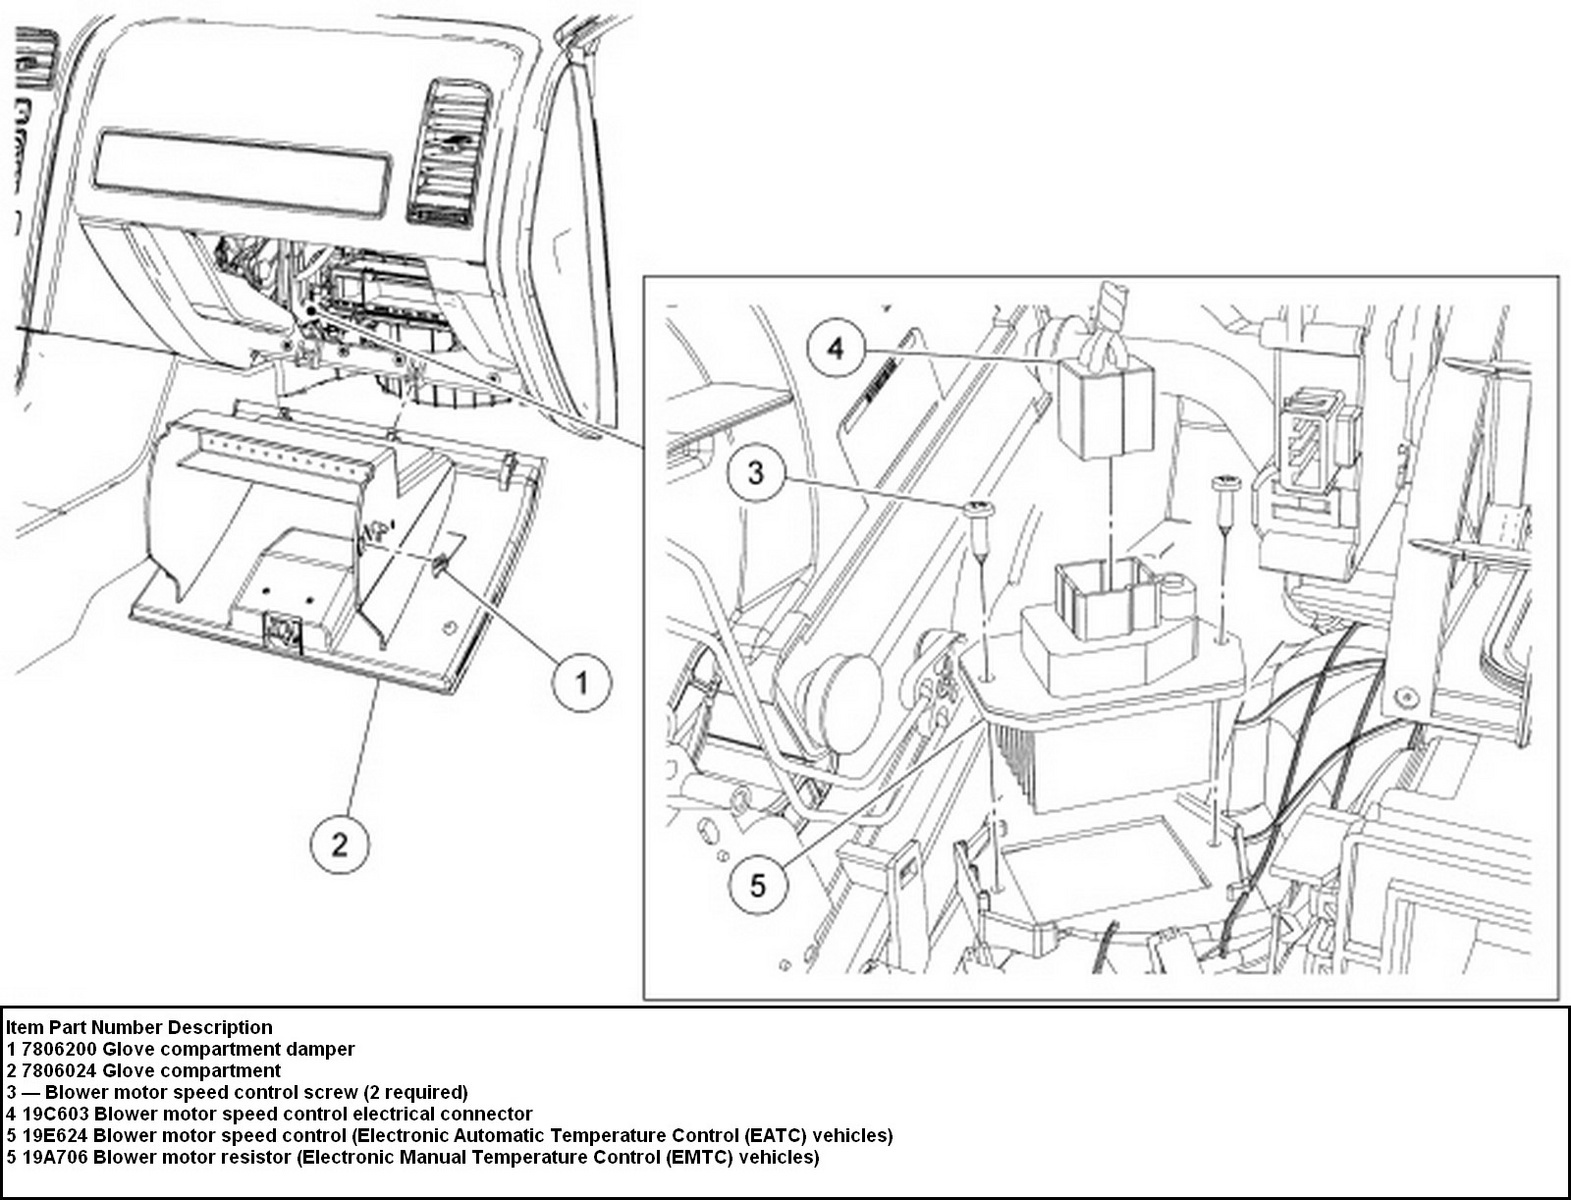 2012 cruze engine diagram wiring diagram for explorer